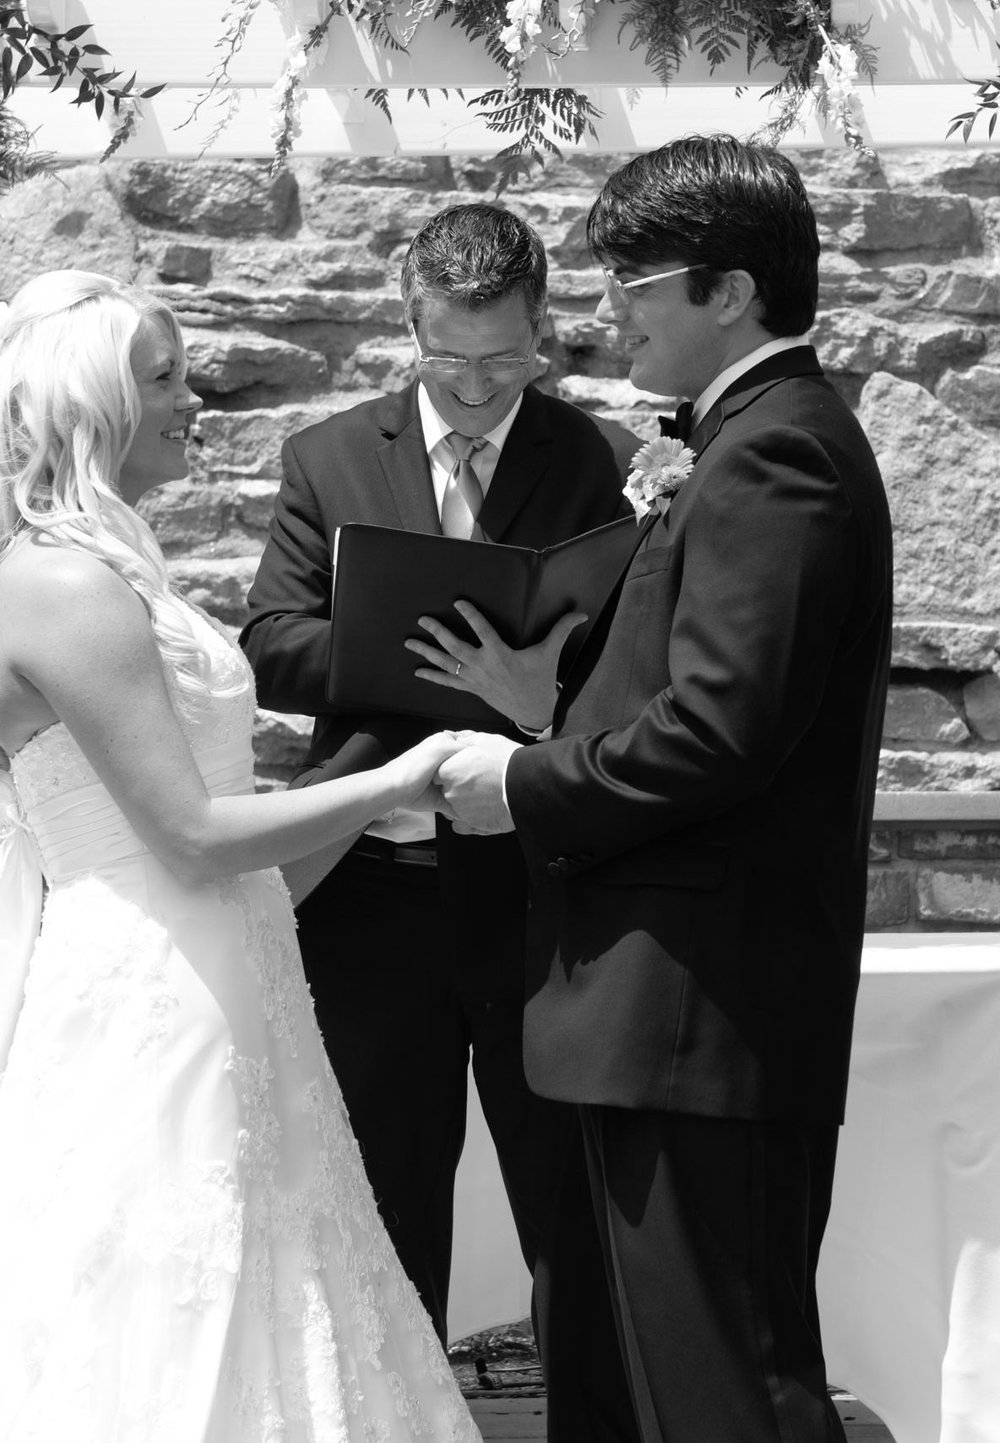 Columbus Ohio, Ben and Teresa's wedding with Damian King officiant